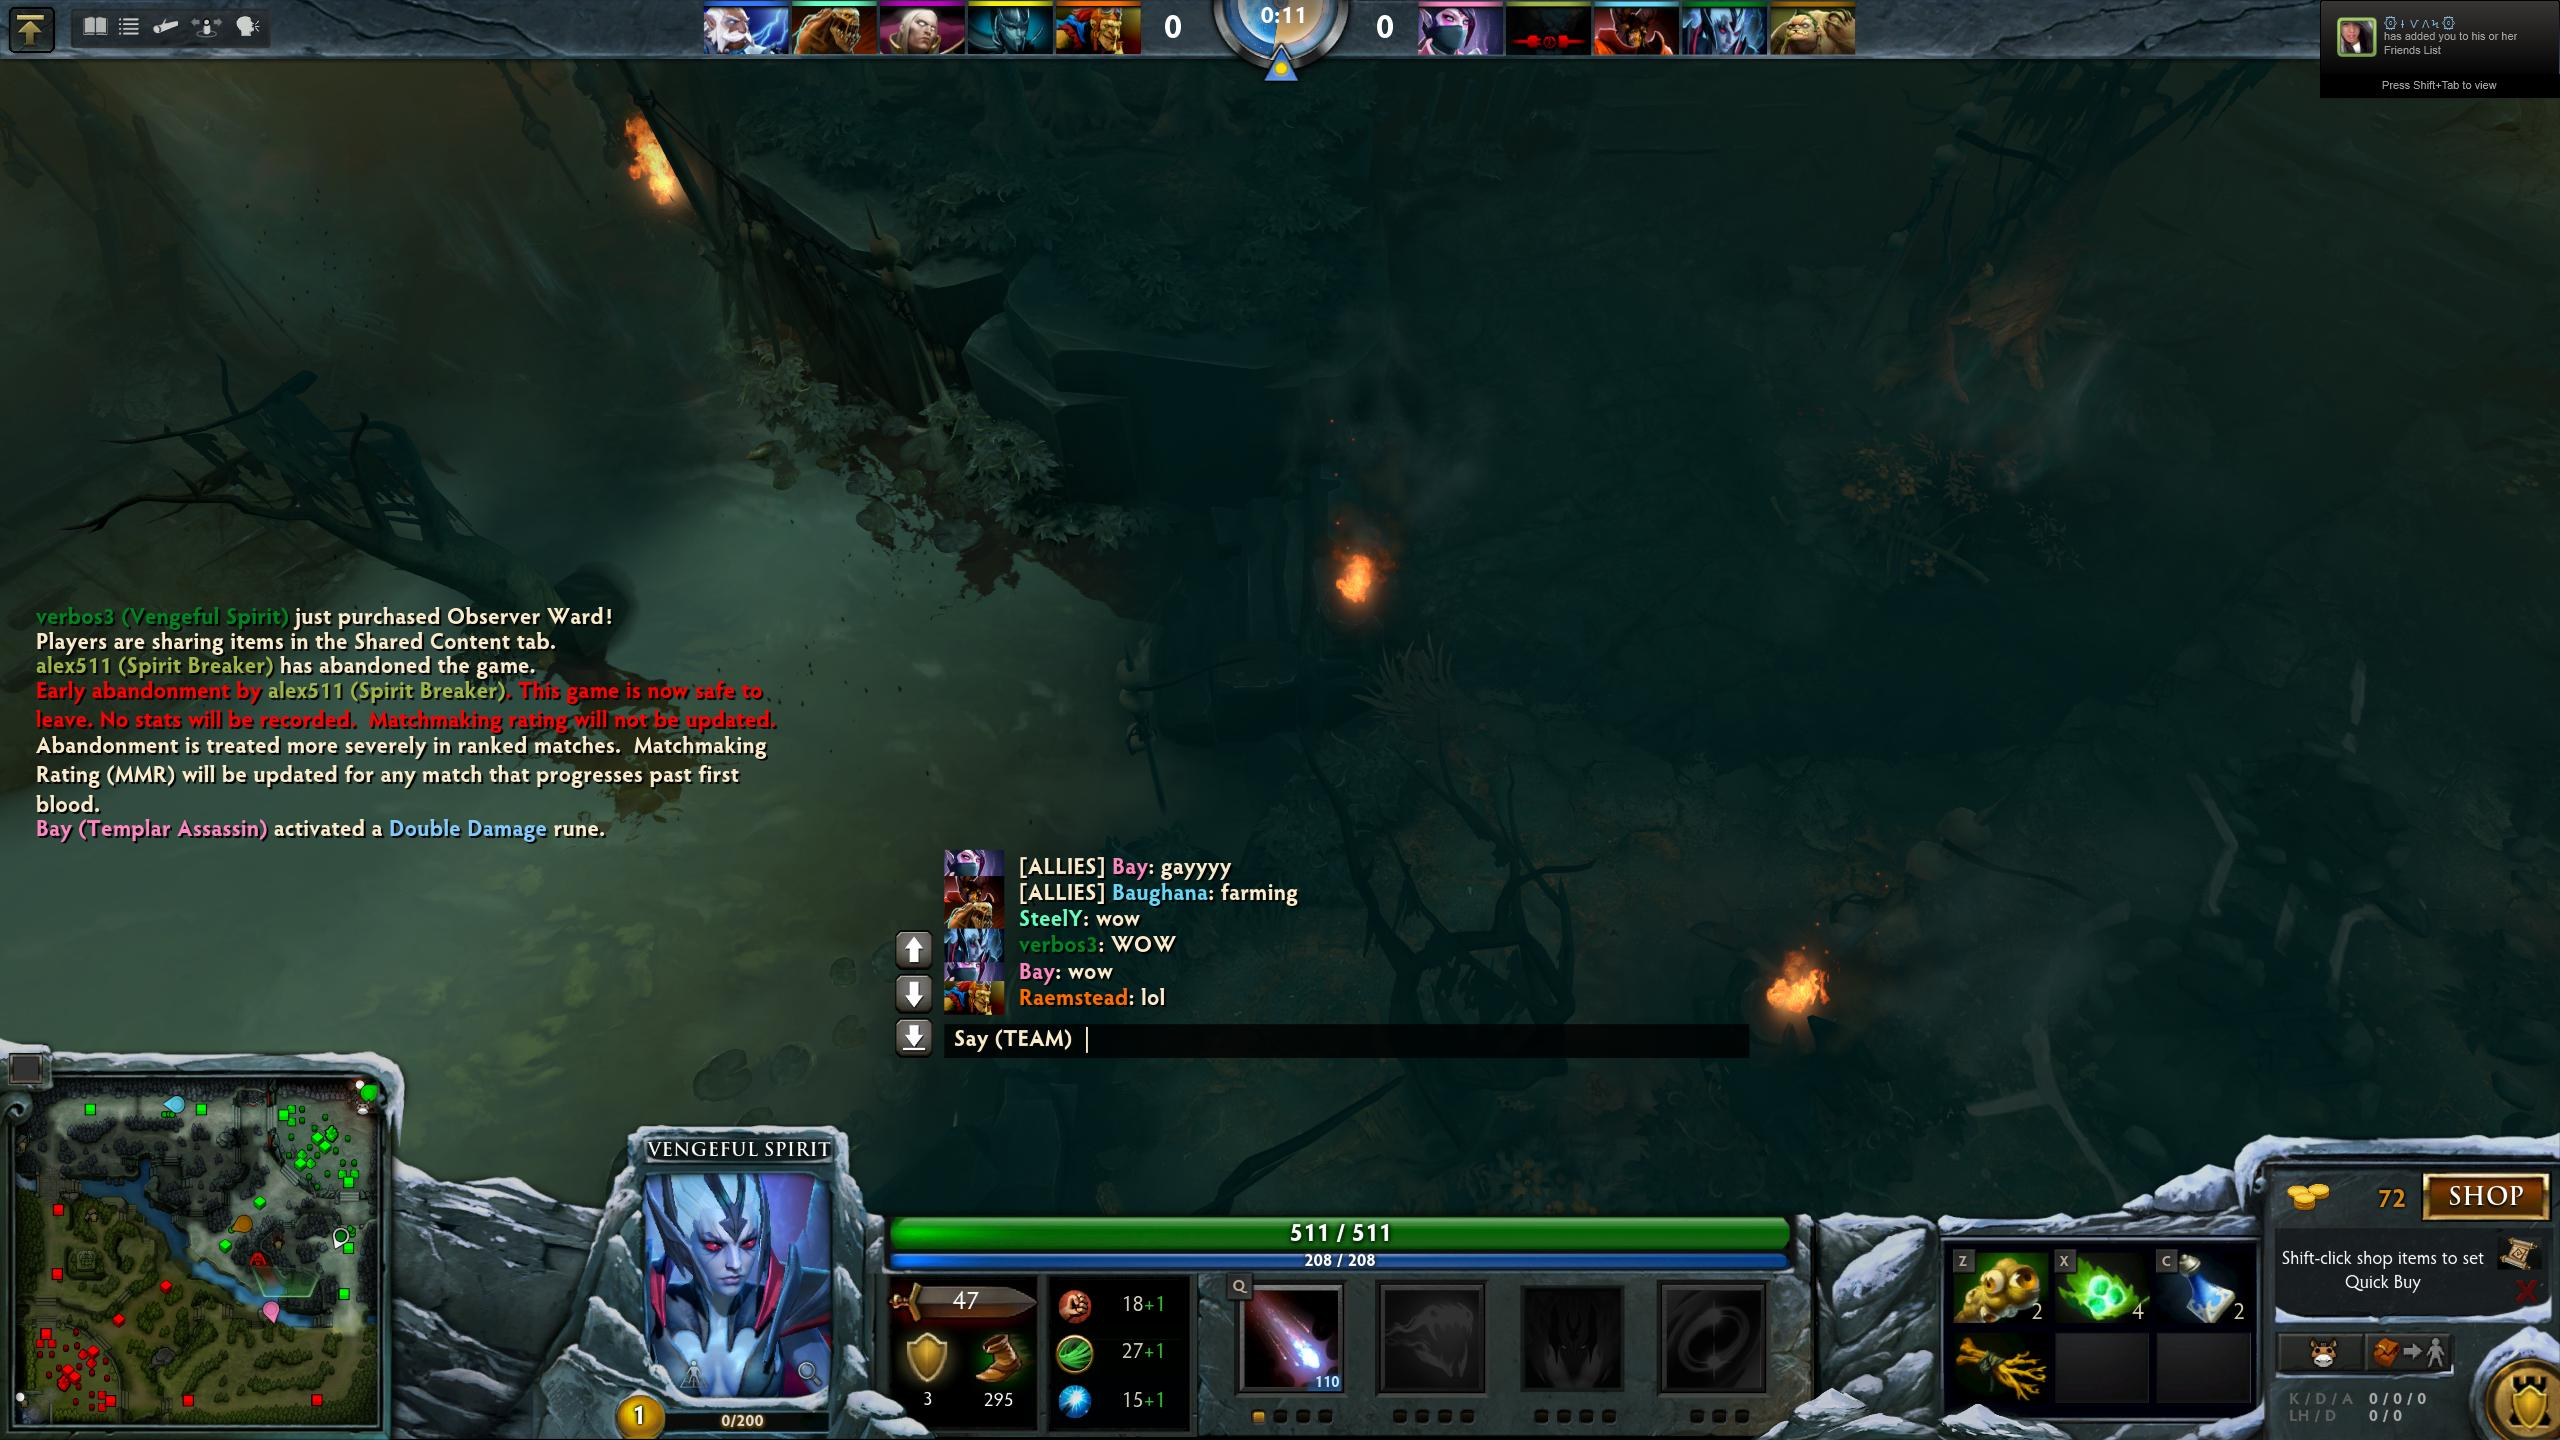 Dota 2 matchmaking abandon